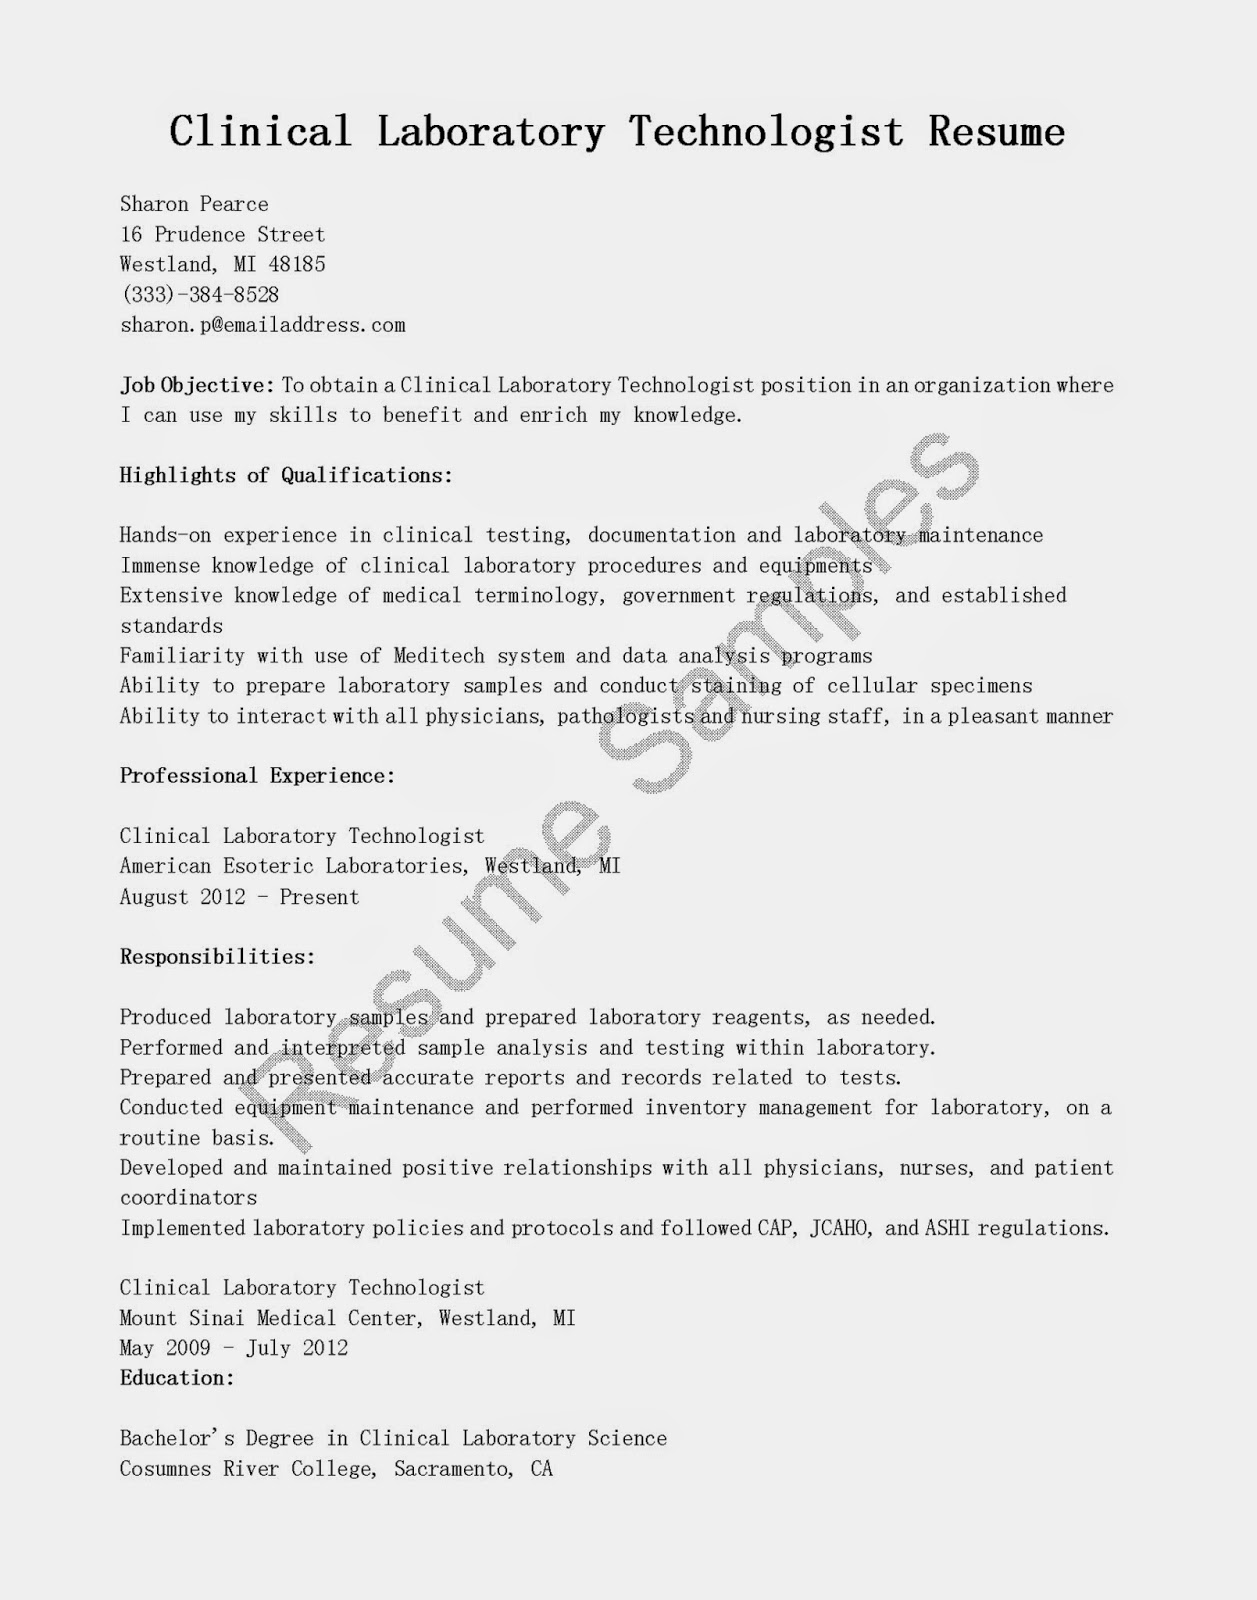 sample resume for clinical laboratory scientist